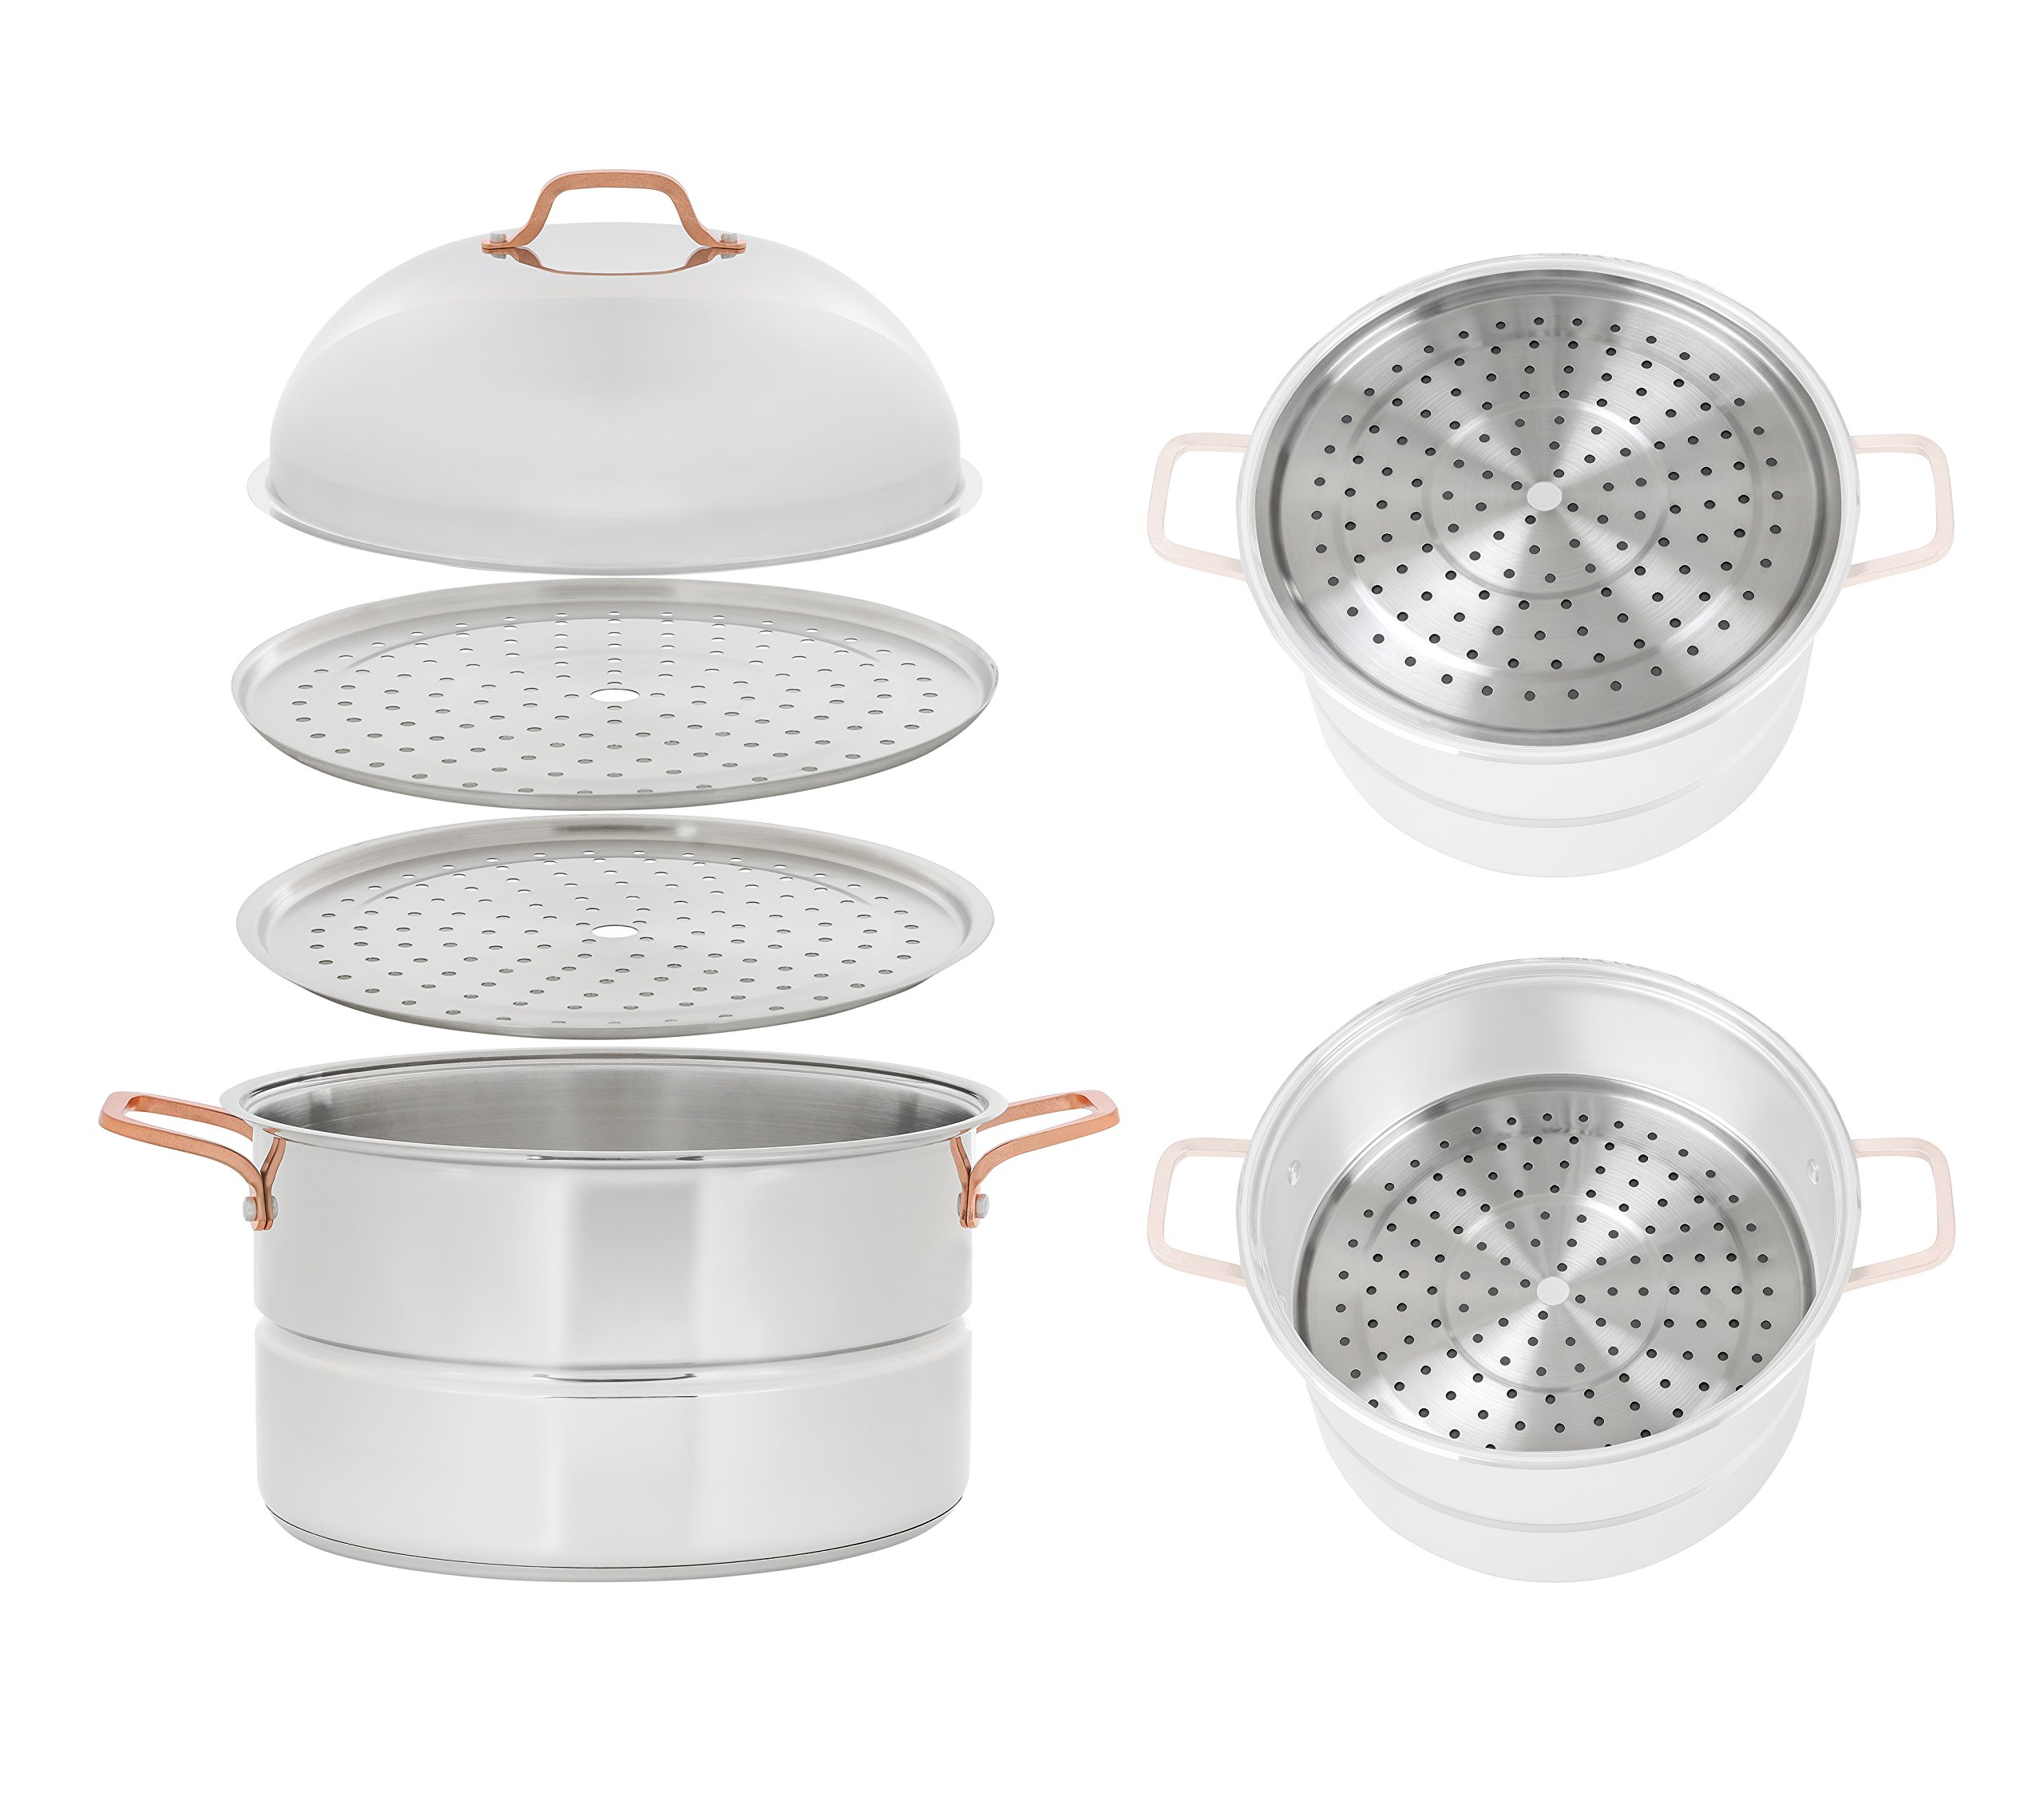 CONCORD 18 Quart Premium Stainless Steel 3 Tier Steamer w/Rose Gold Handles 34 CM (Extra Large) (V.2 2019 New Model) by Concord Cookware (Image #2)